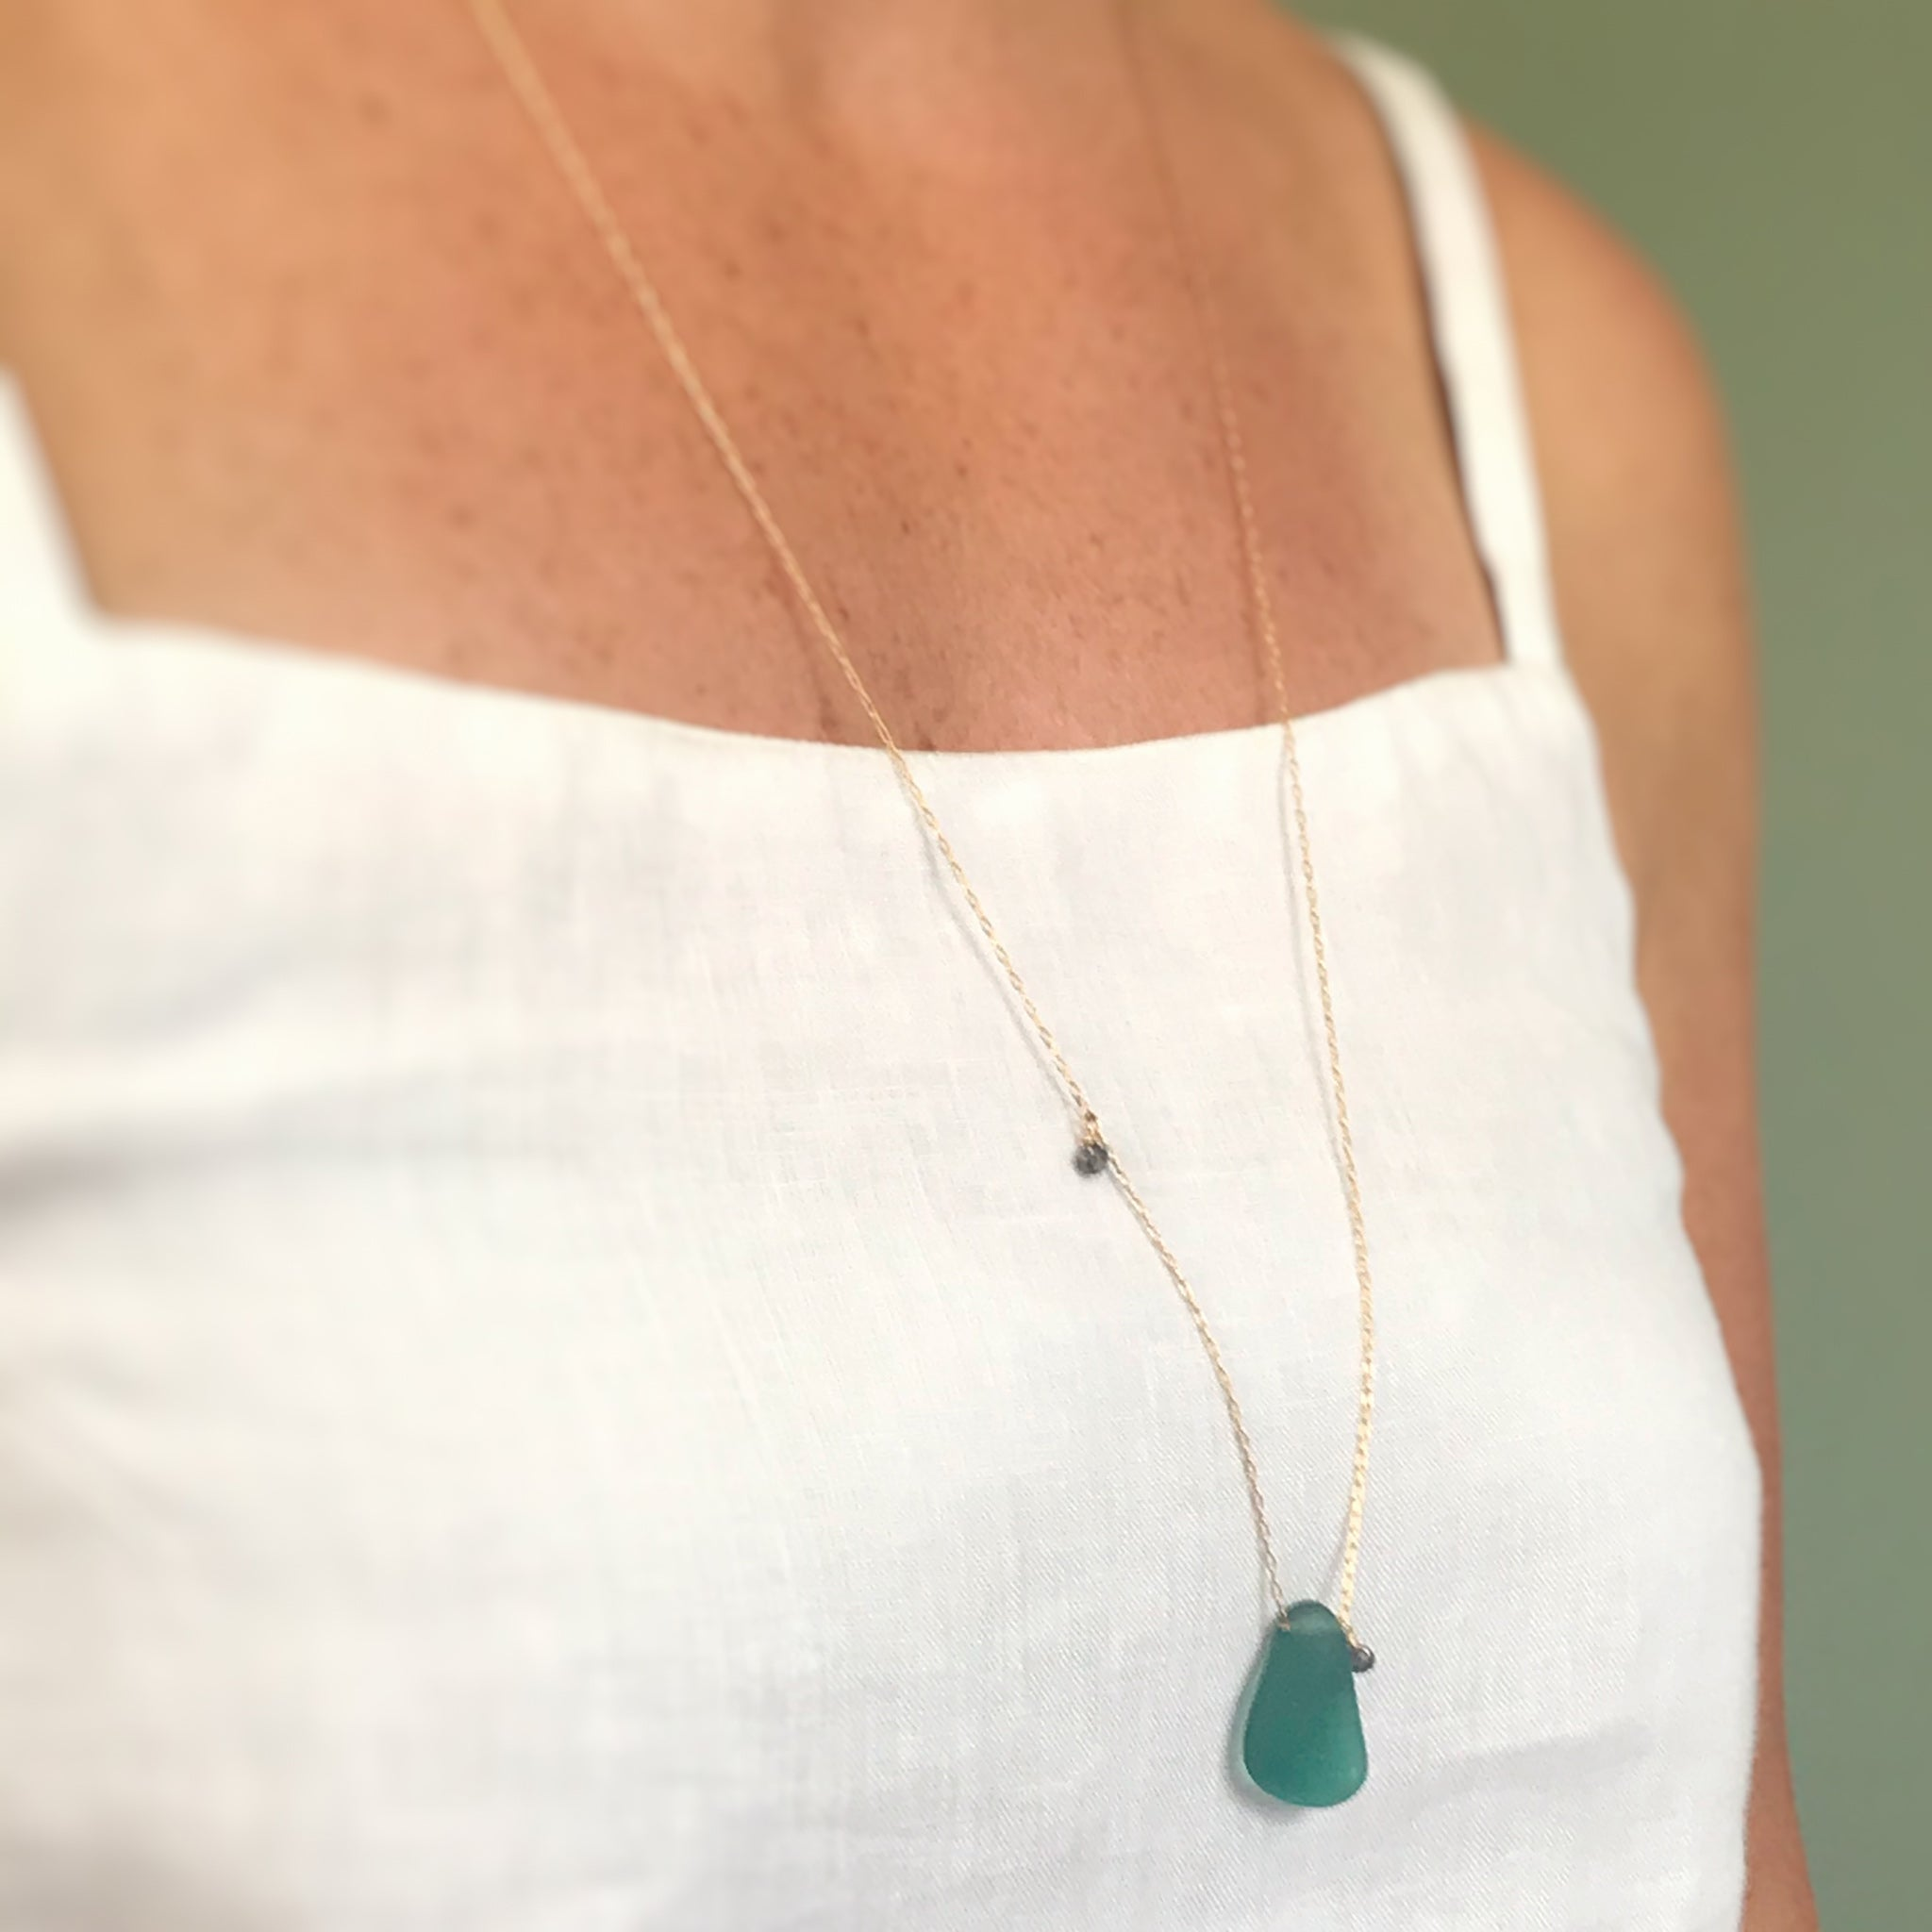 emerald green necklace seaglass and diamonds on gold chain Kriket Broadhurst gifts for women Australia